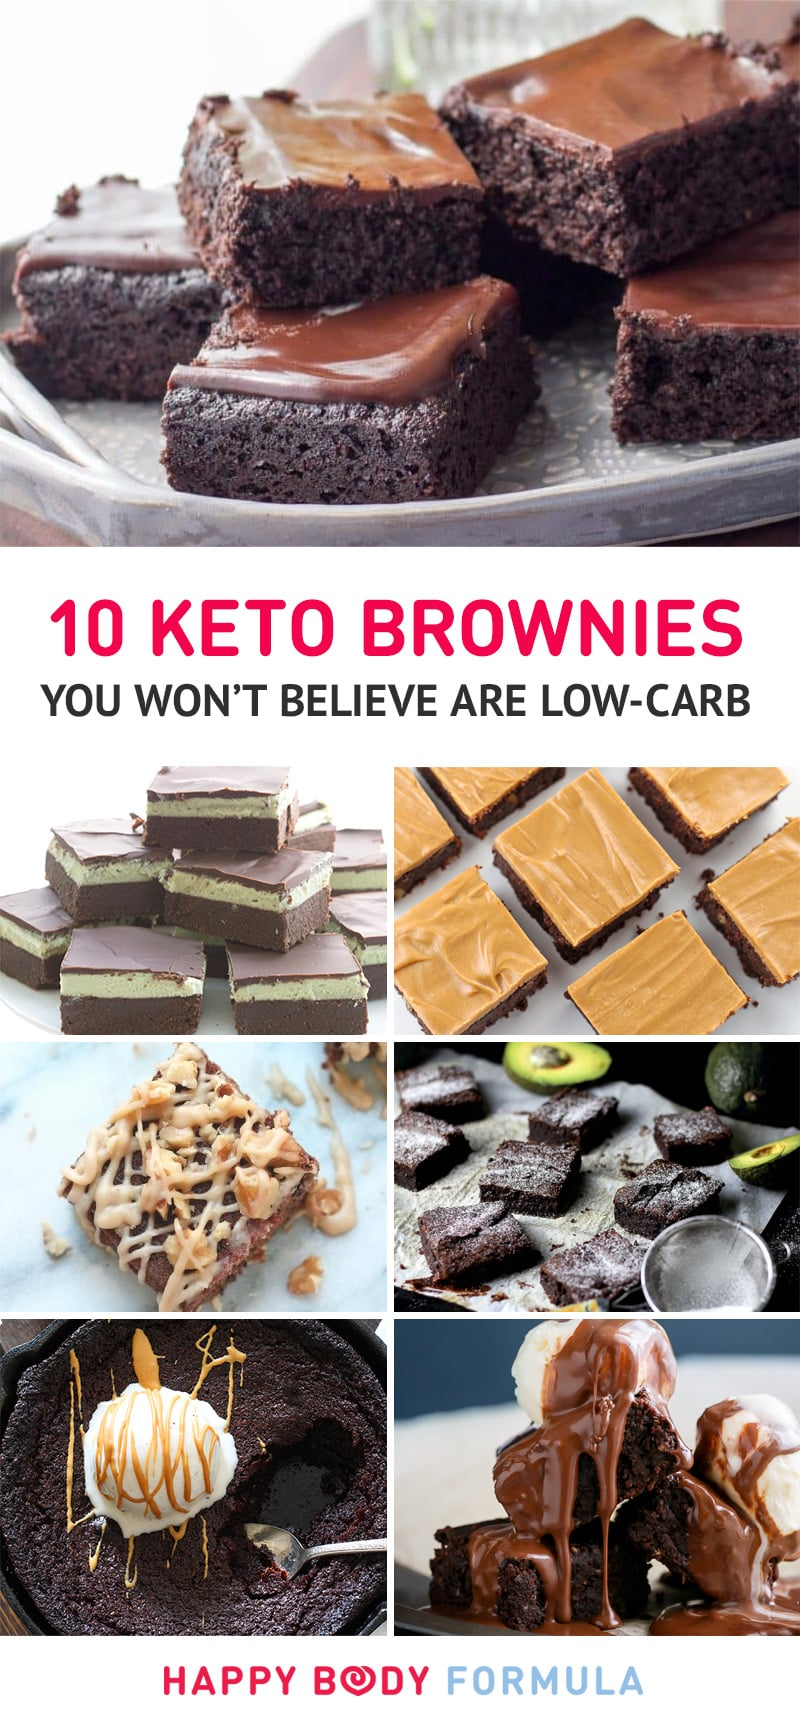 10 Keto Brownies You Won't Believe Are Low-Carb